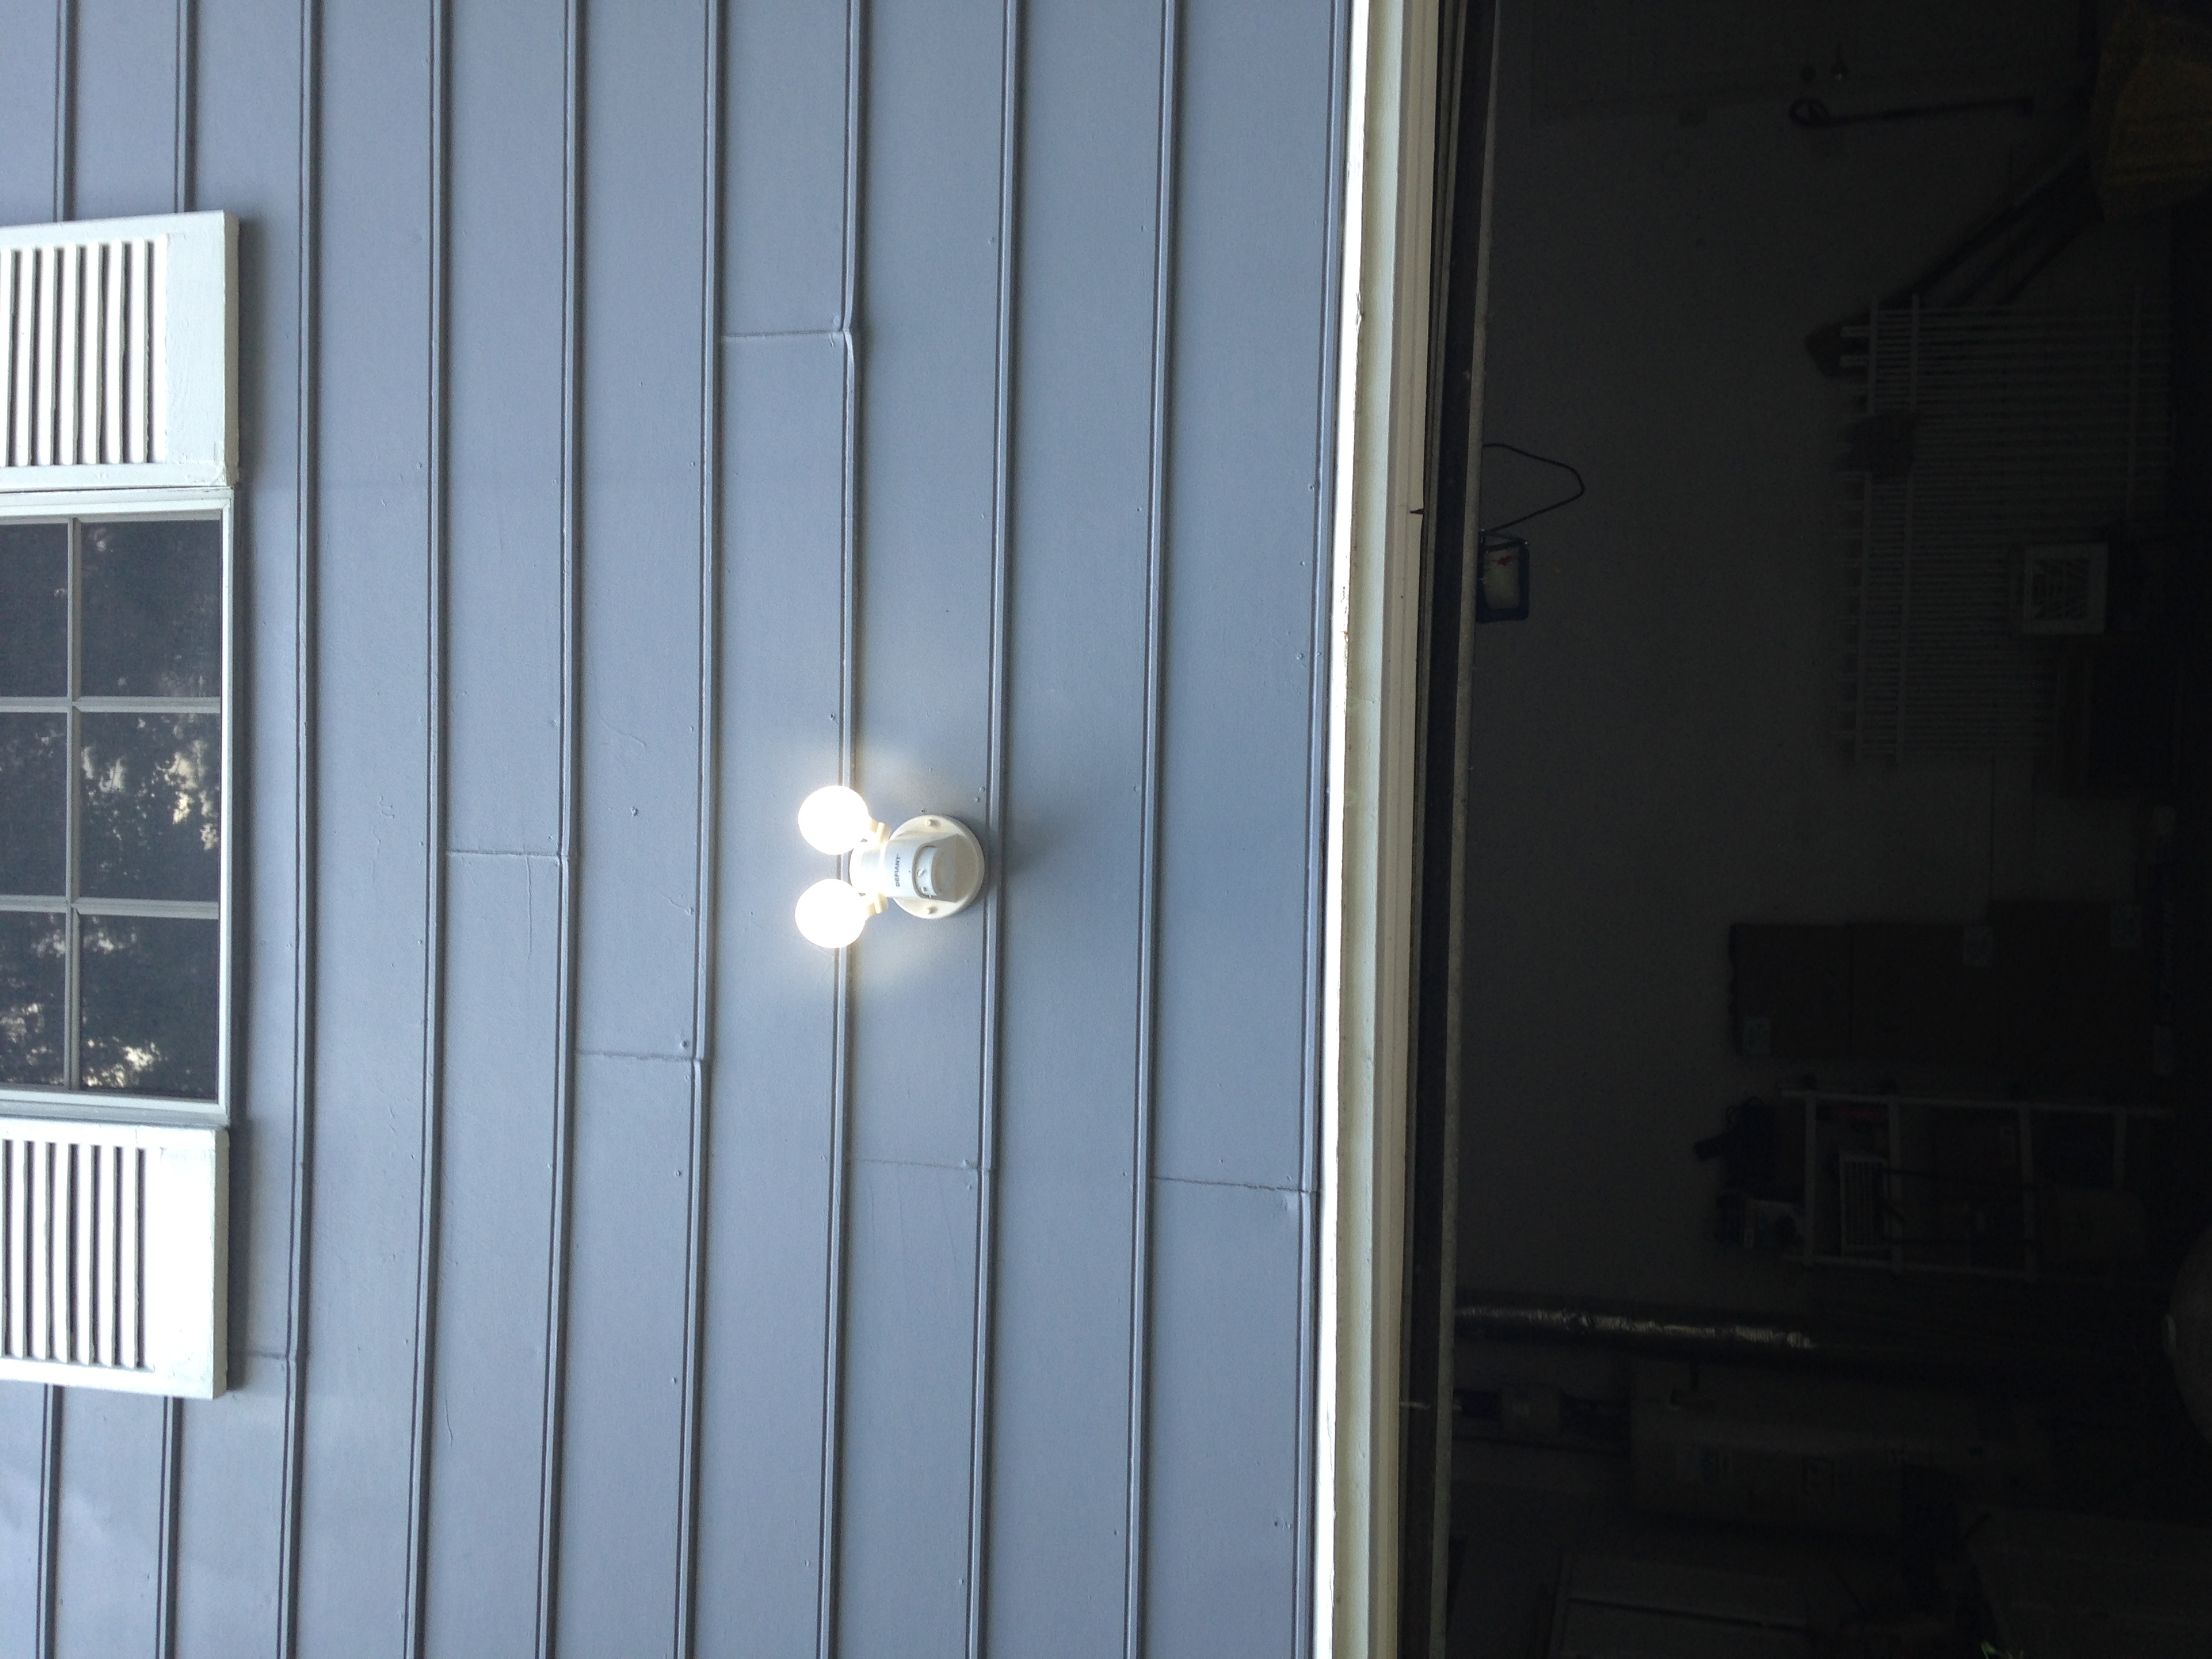 Motion detector flood light